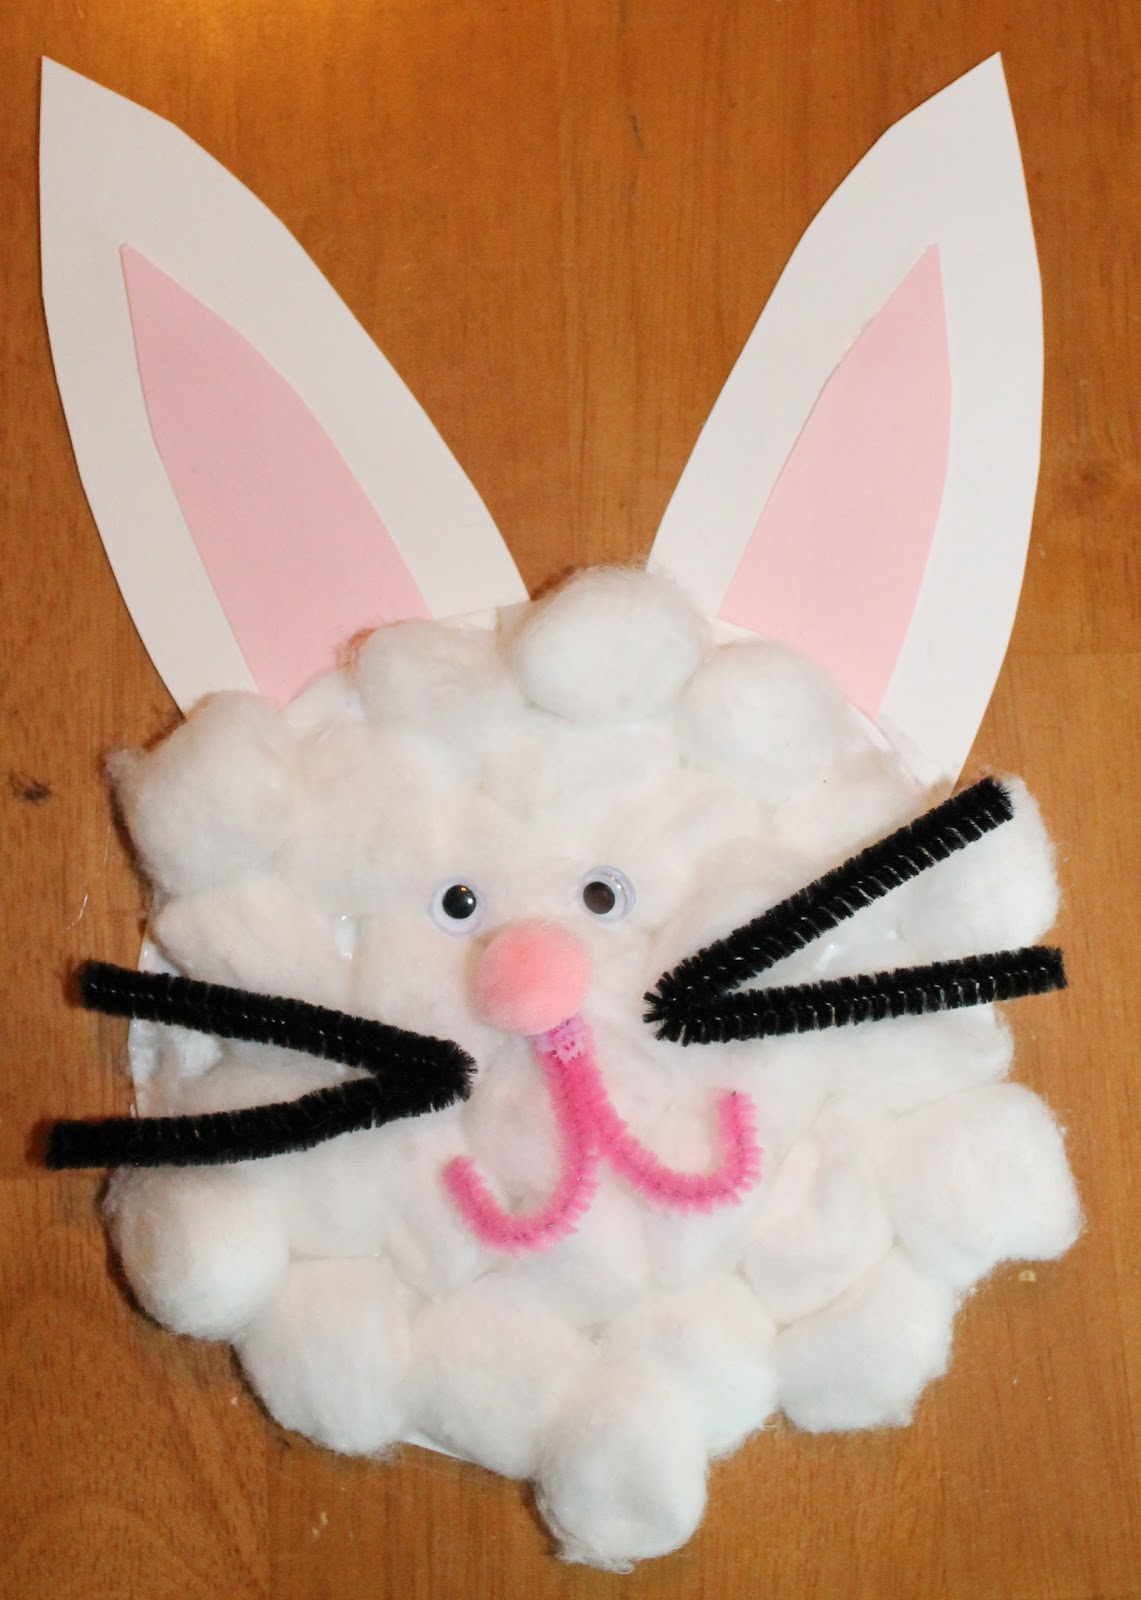 Paper Plate Bunny Craft - Paper Crafts Ideas for Kids